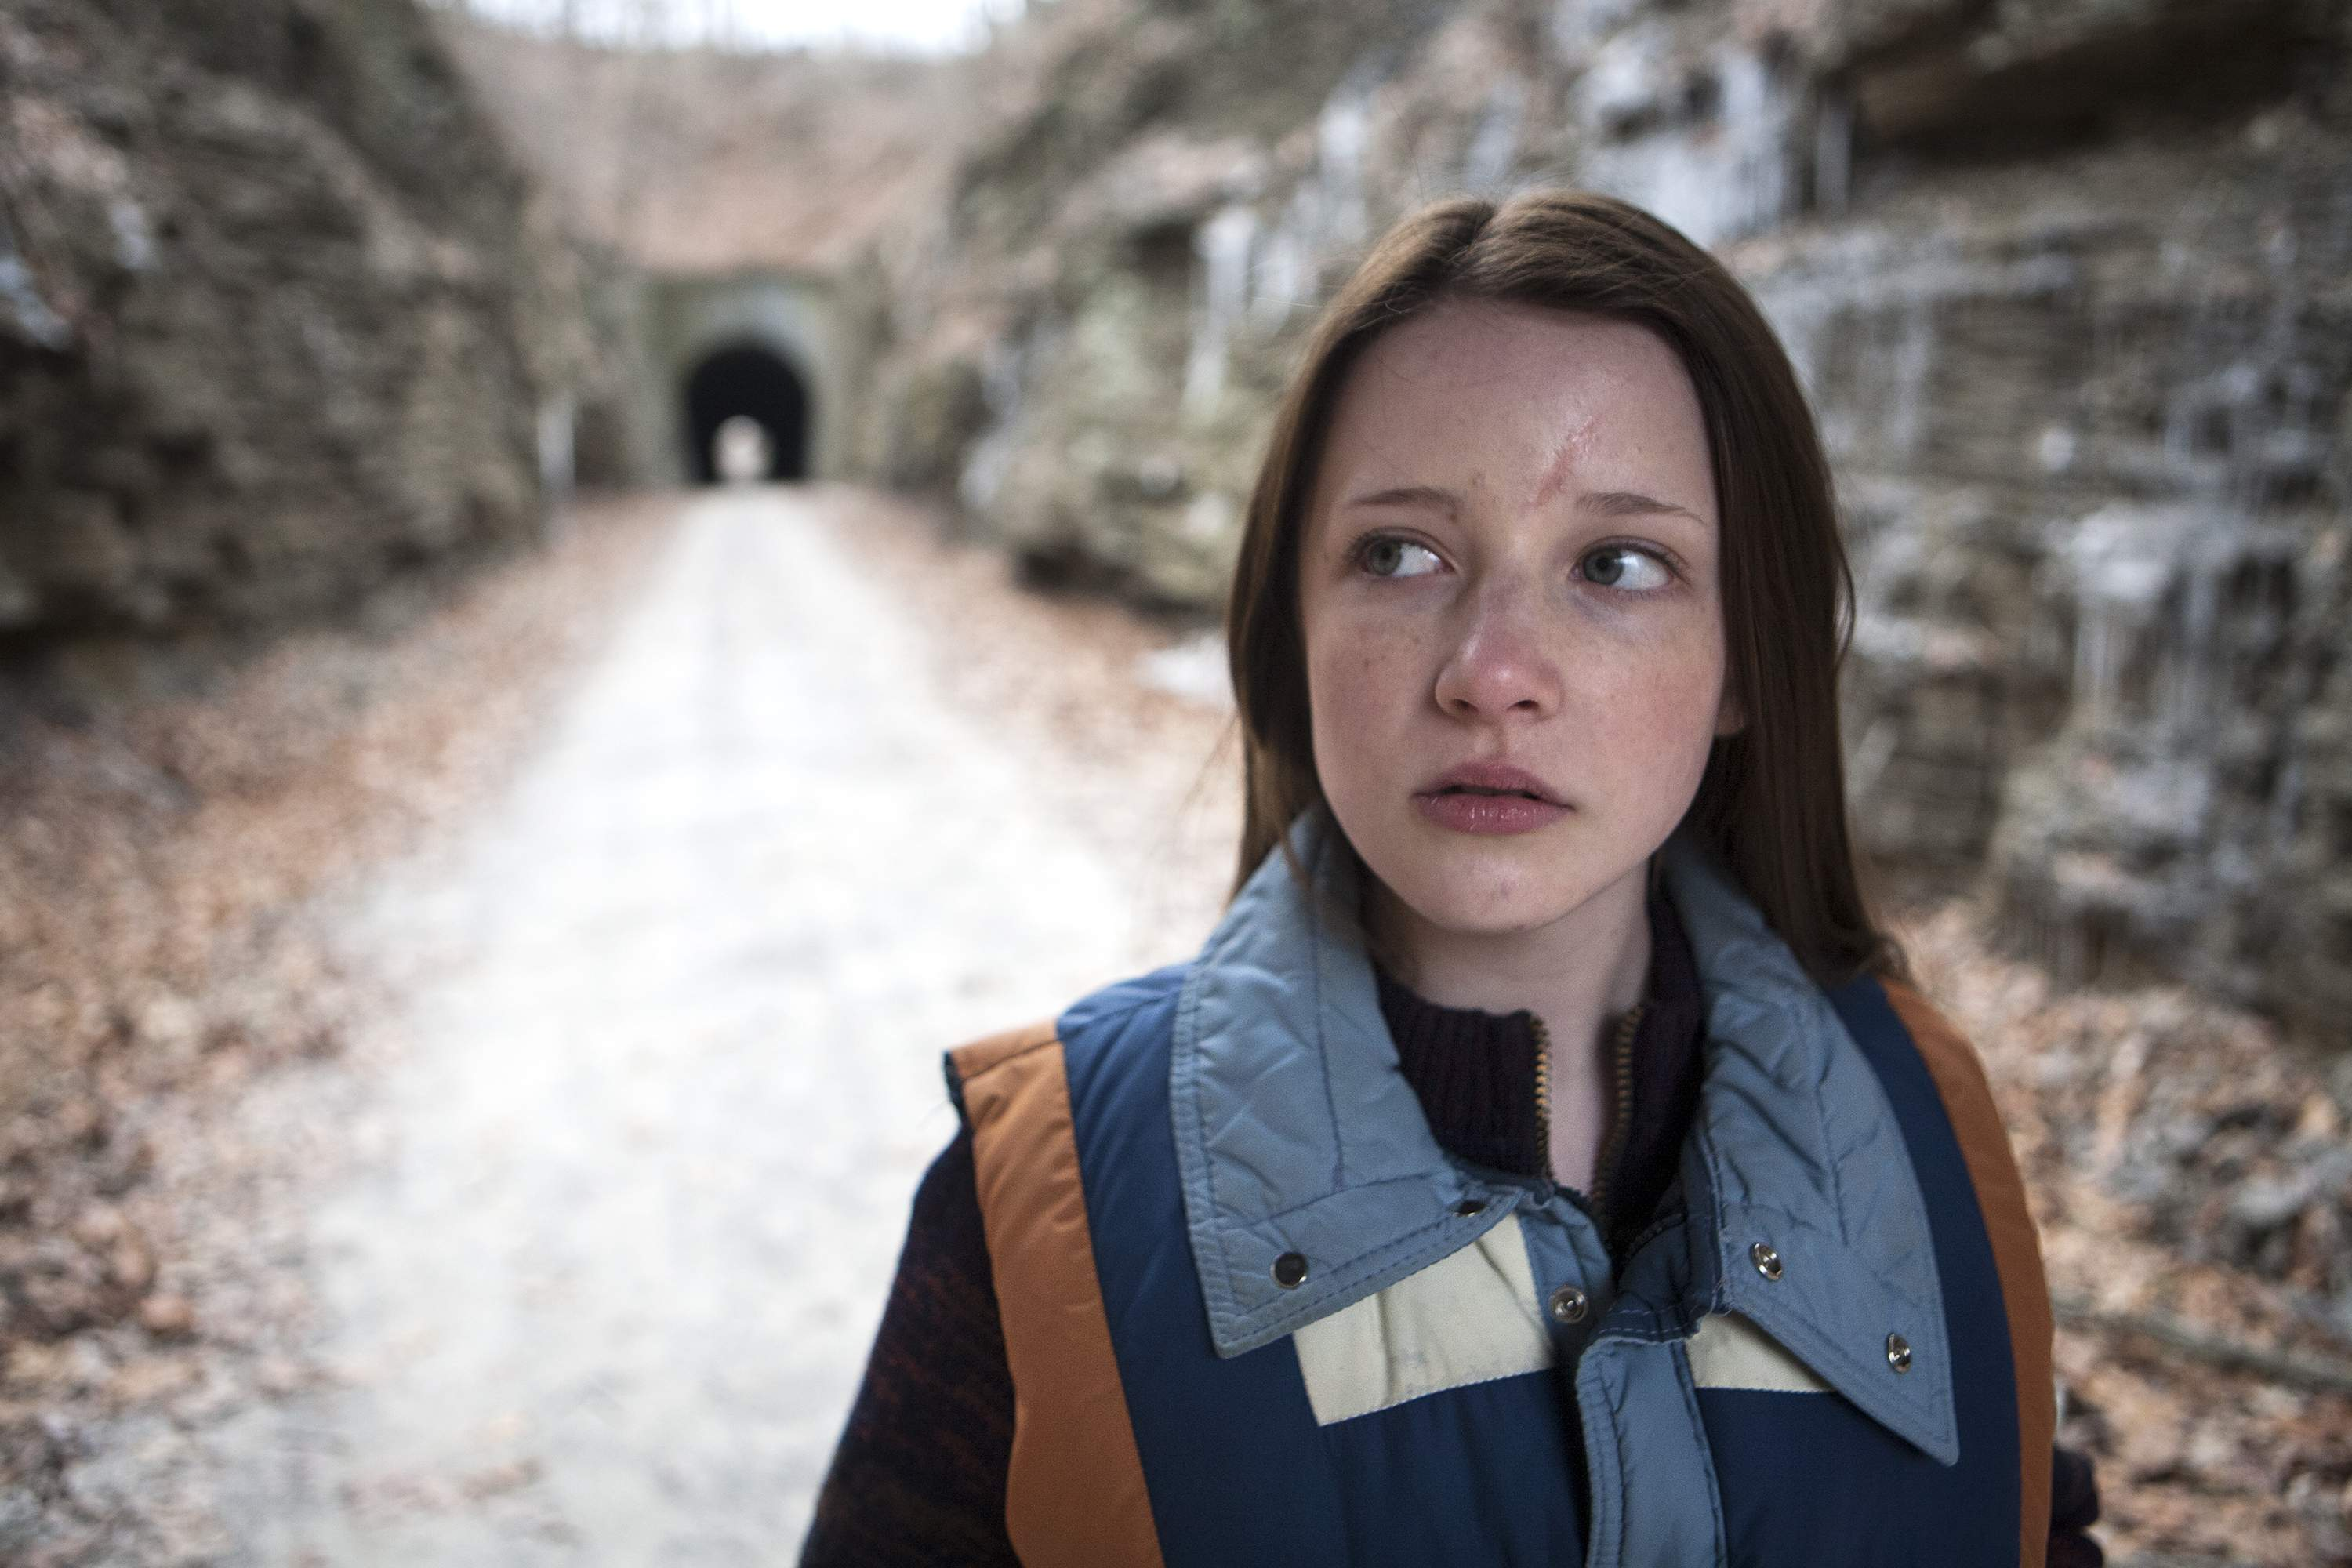 Actress Samantha Isler (playing Jake Mather), in a scene shot on the Tunnel Hill State Trail in Johnson County.